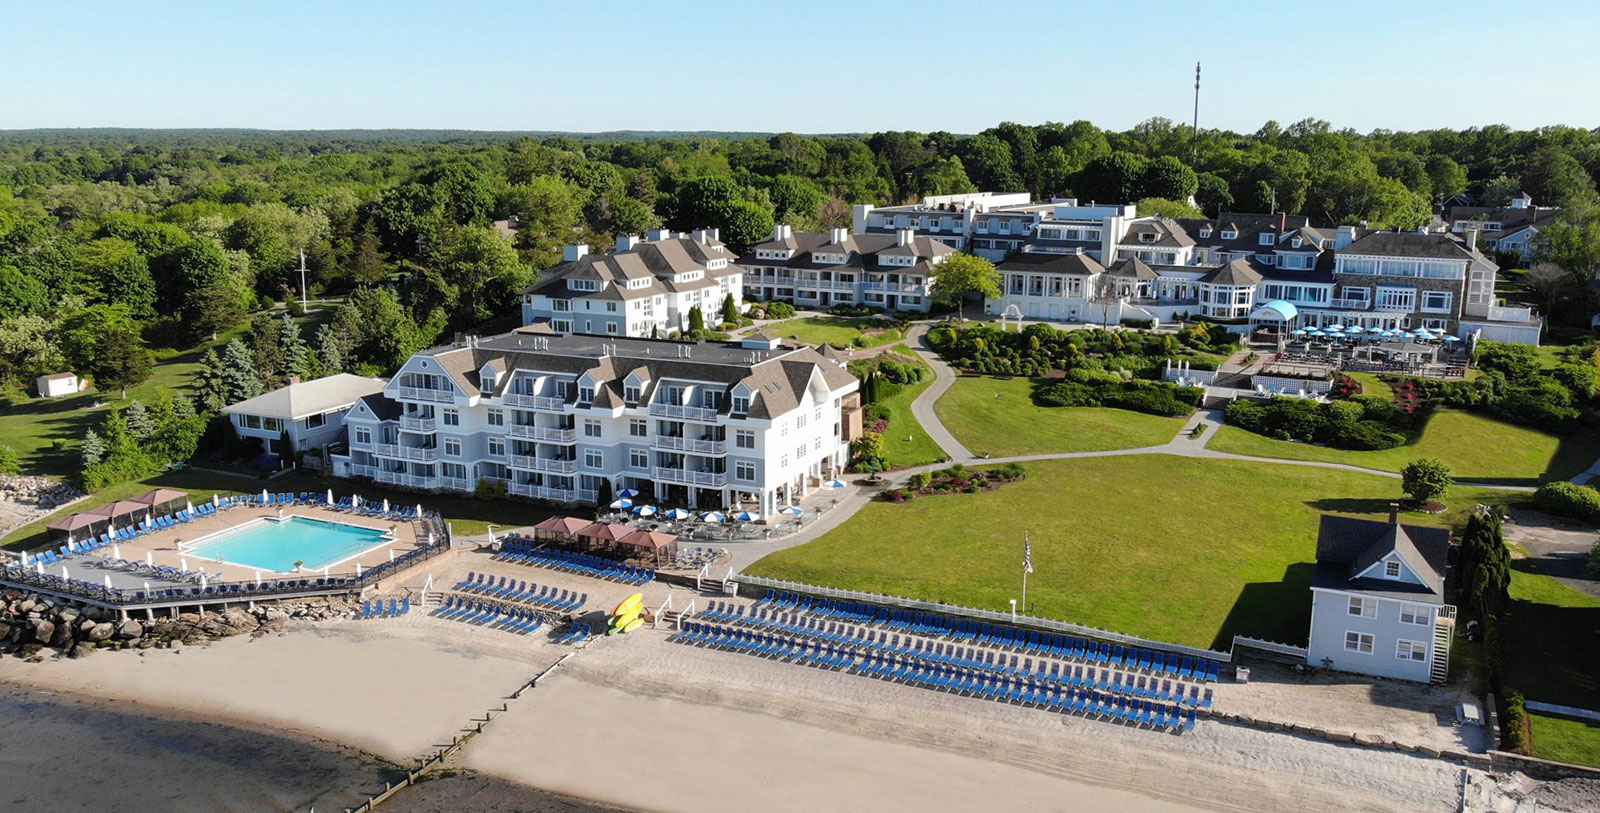 Image of Resort Exterior & Beach, Water's Edge Resort and Spa, Westbrook, Connecticut, 1920, Member of Historic Hotels of America, Special Offers, Discounted Rates, Families, Romantic Escape, Honeymoons, Anniversaries, Reunions